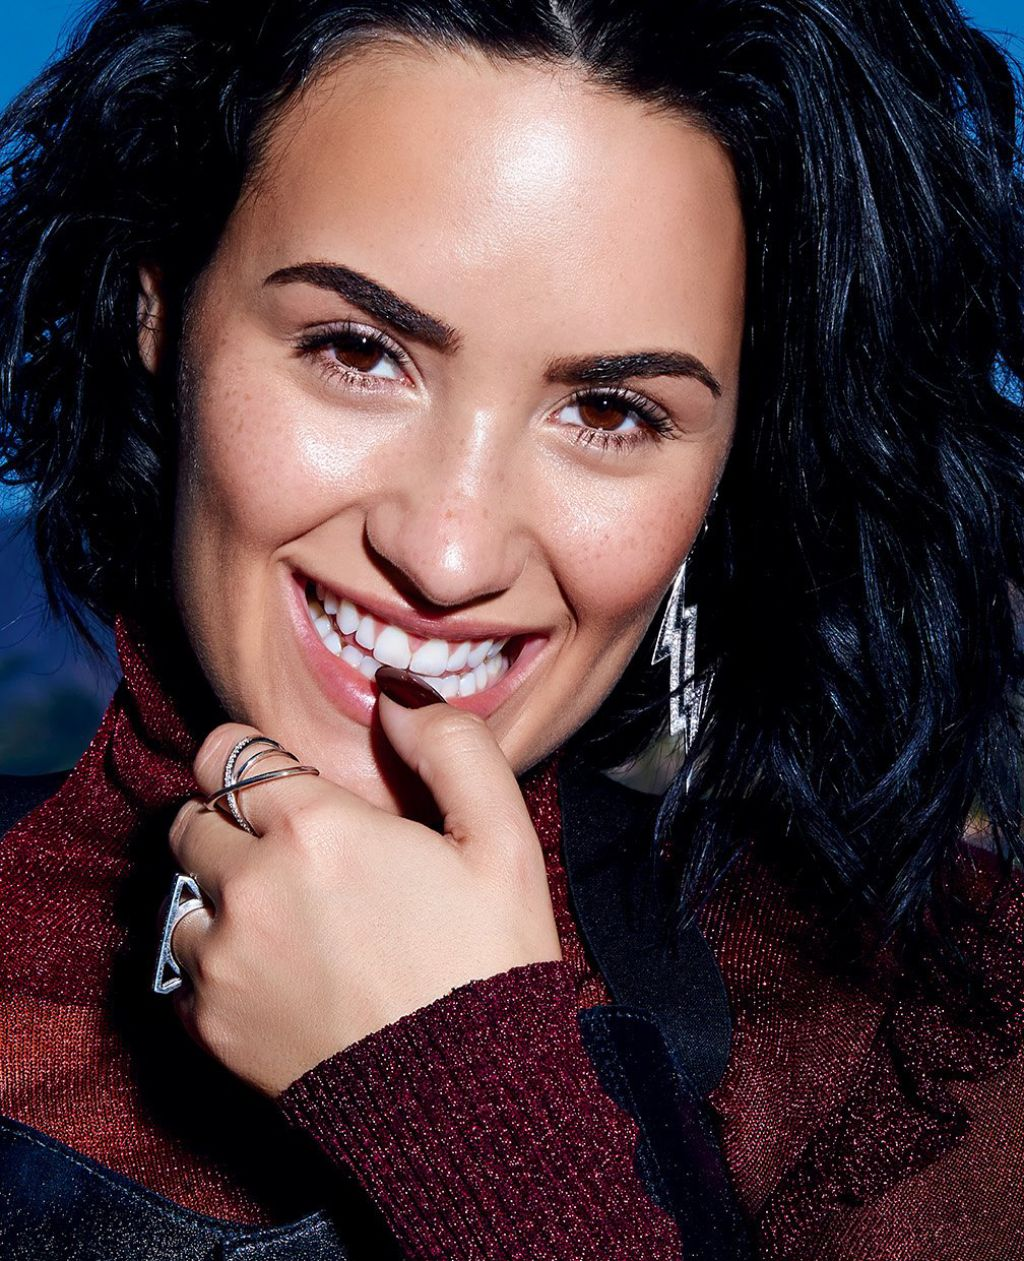 demi lovato - photo #13